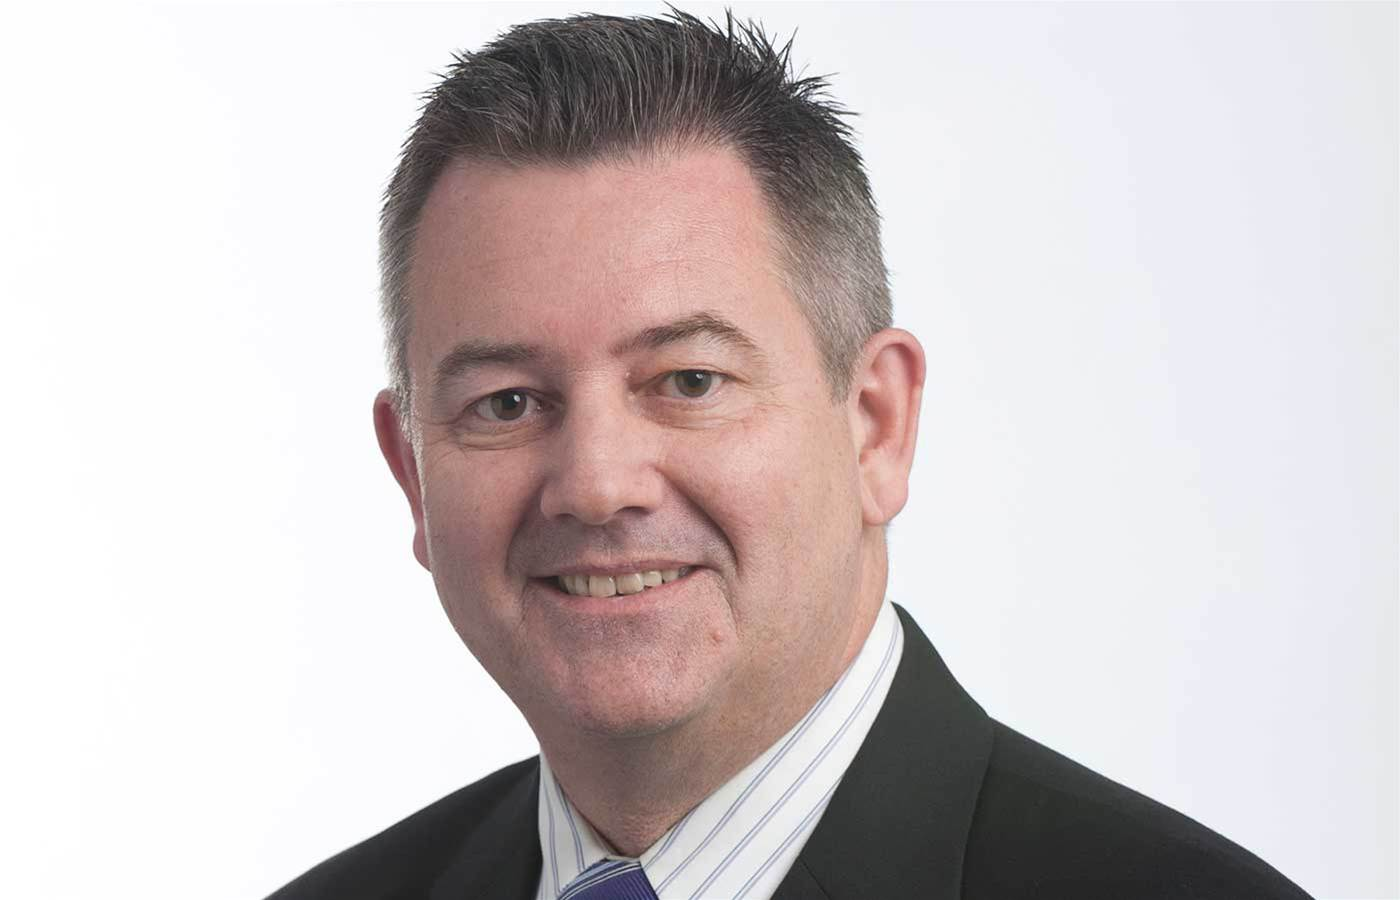 Telstra networks boss to depart after 38 years with company